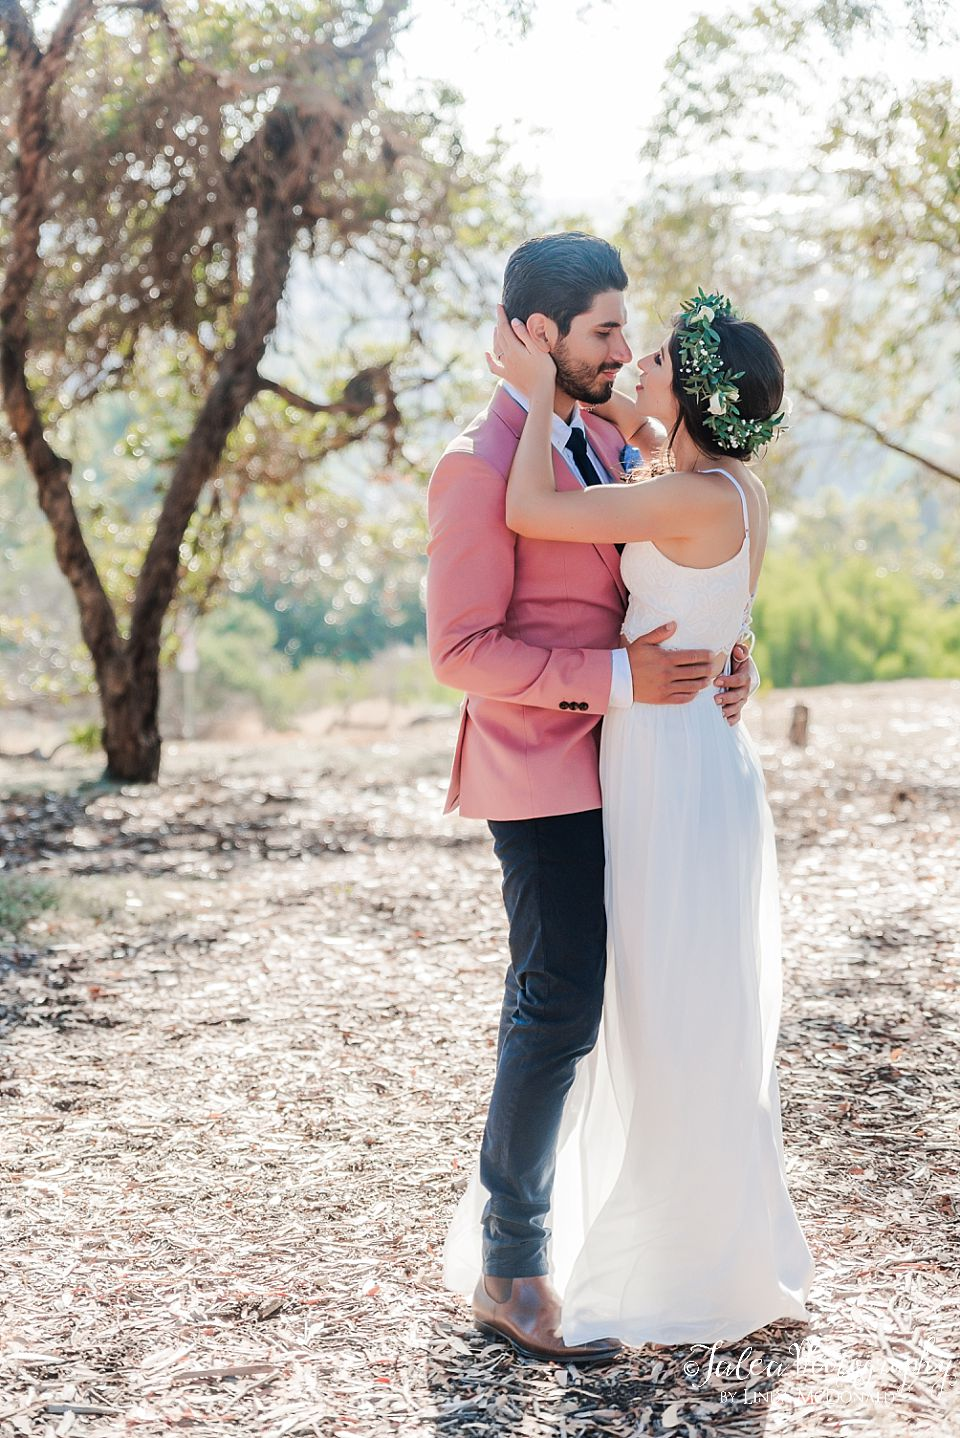 elopement couple with arms around each other rustic scenary